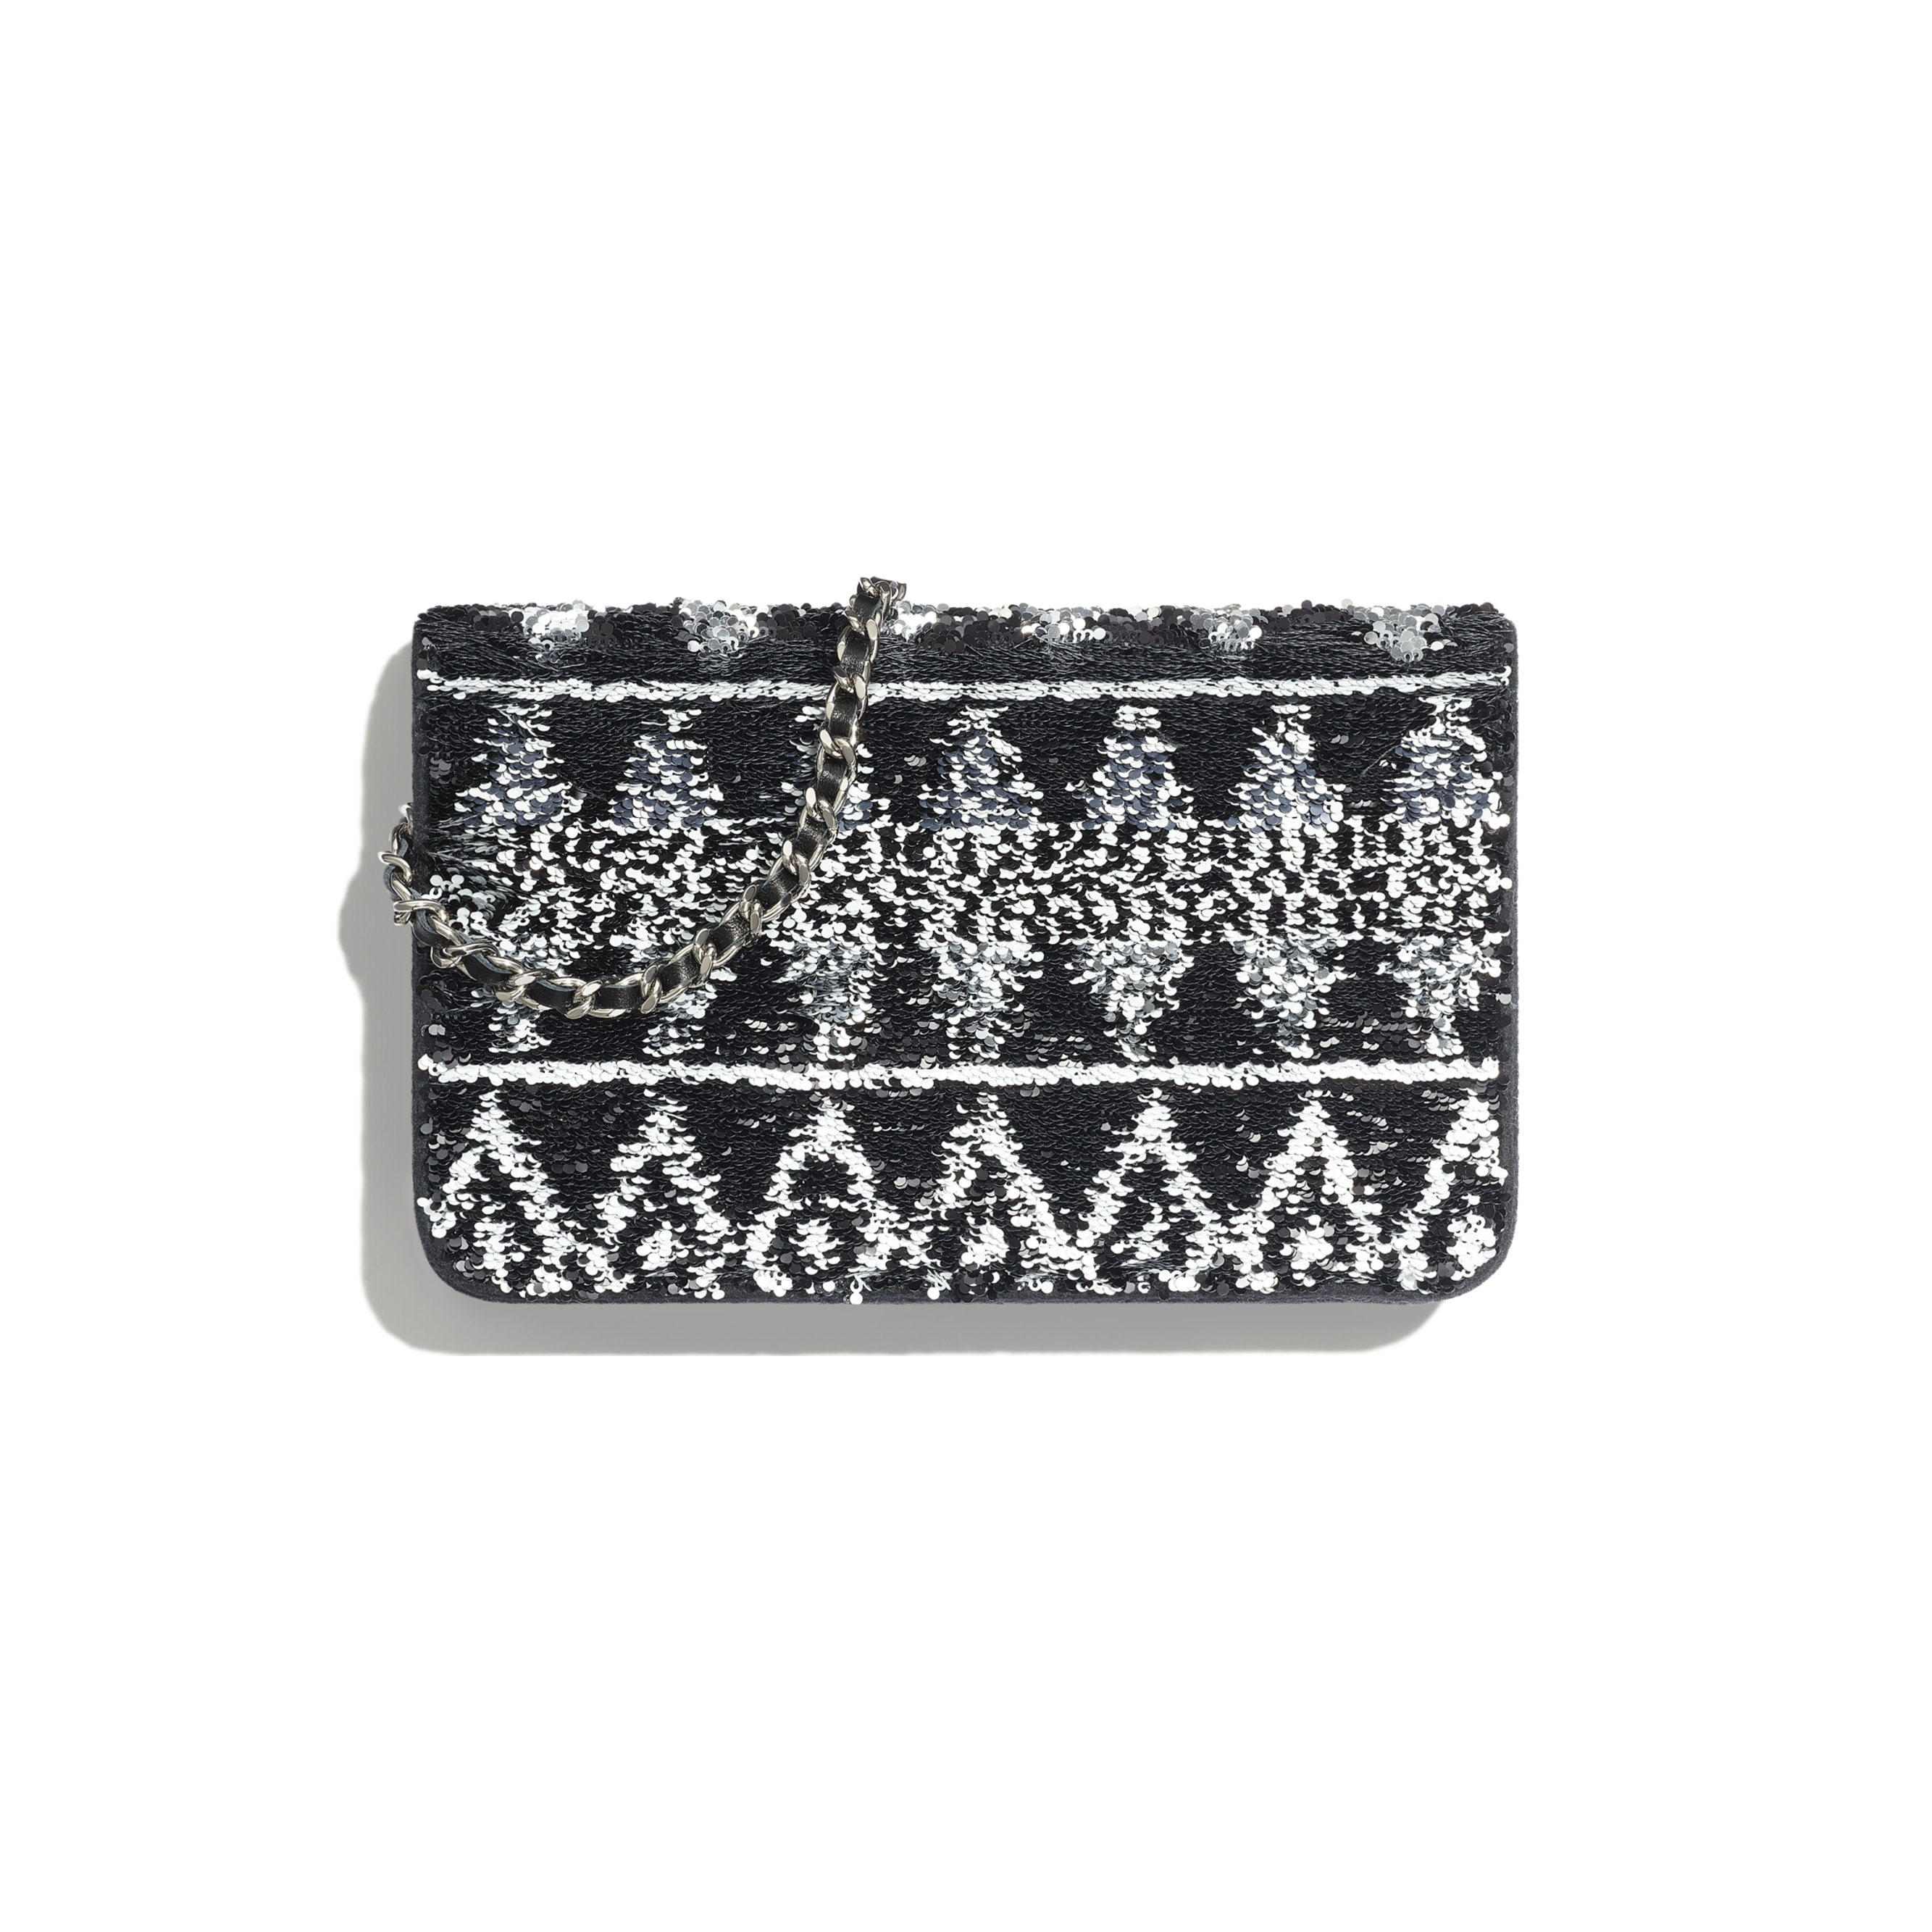 Wallet On Chain - Silver & Black - Sequins, Wool Felt & Ruthenium-Finish Metal - Alternative view - see standard sized version